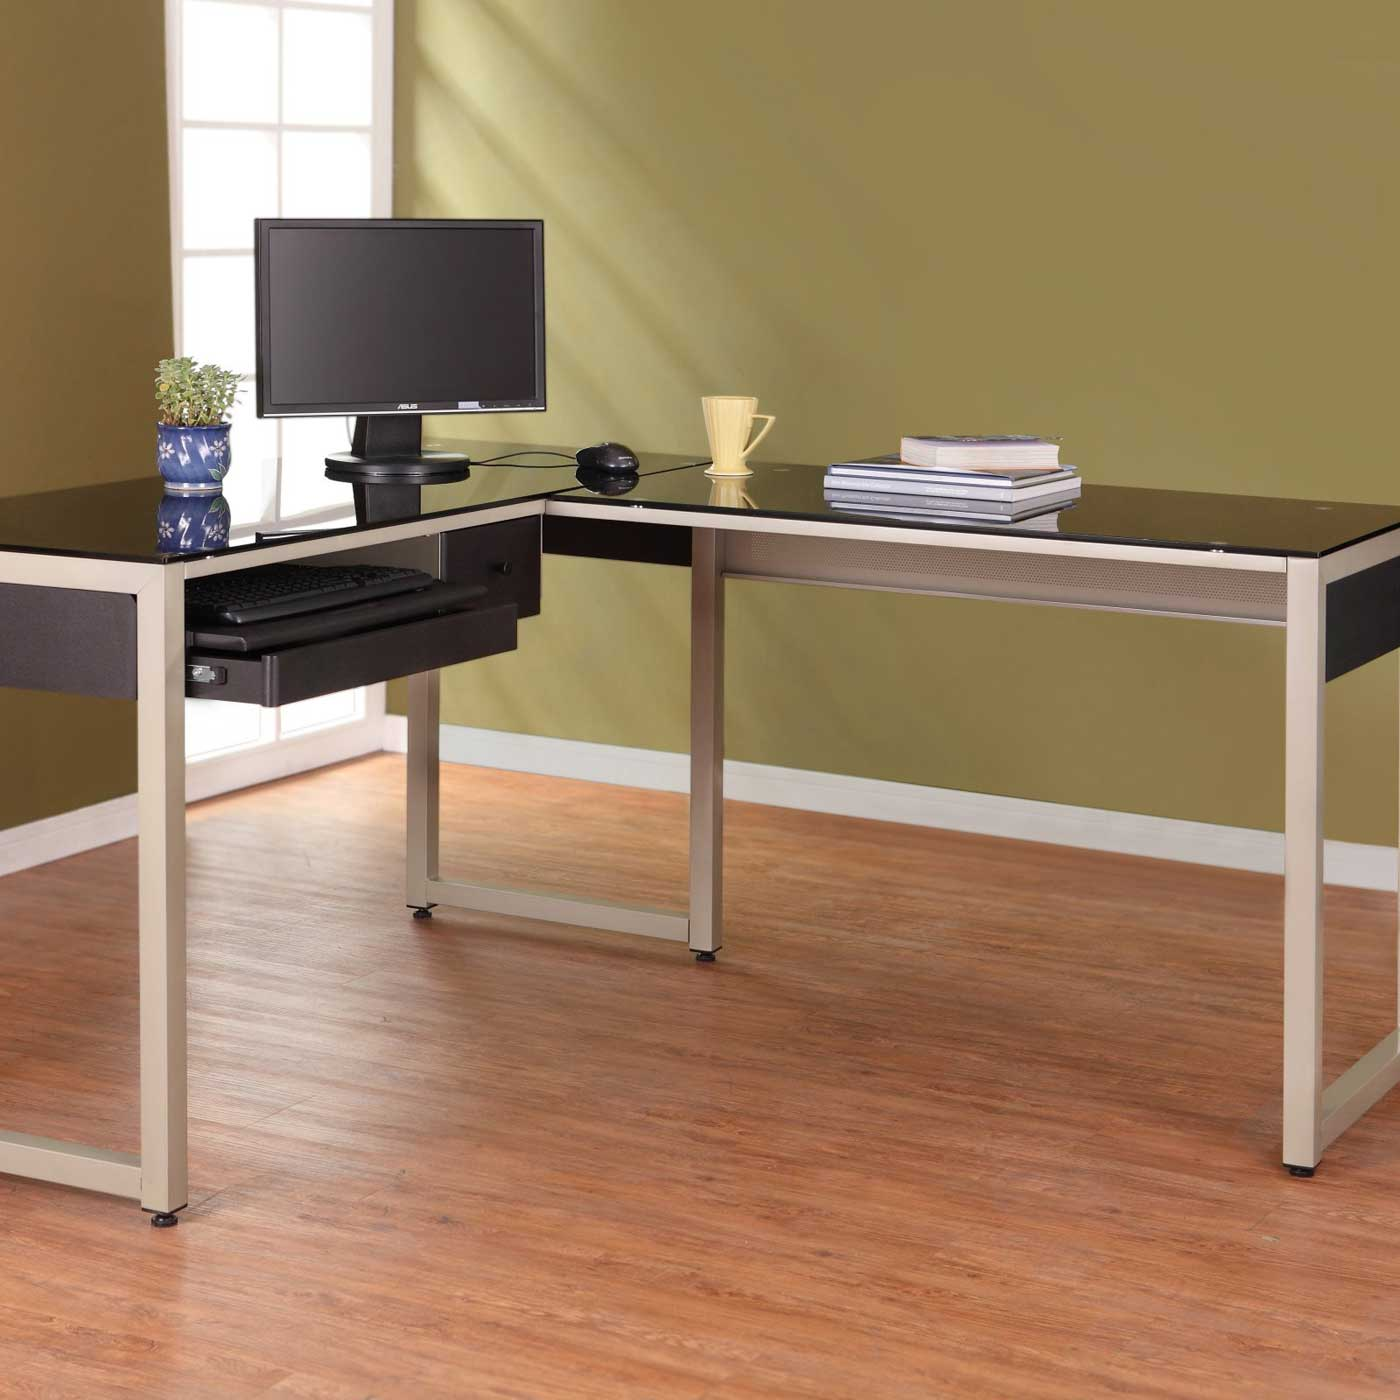 Zoose Black Glass L-Shaped Metal Computer Desk